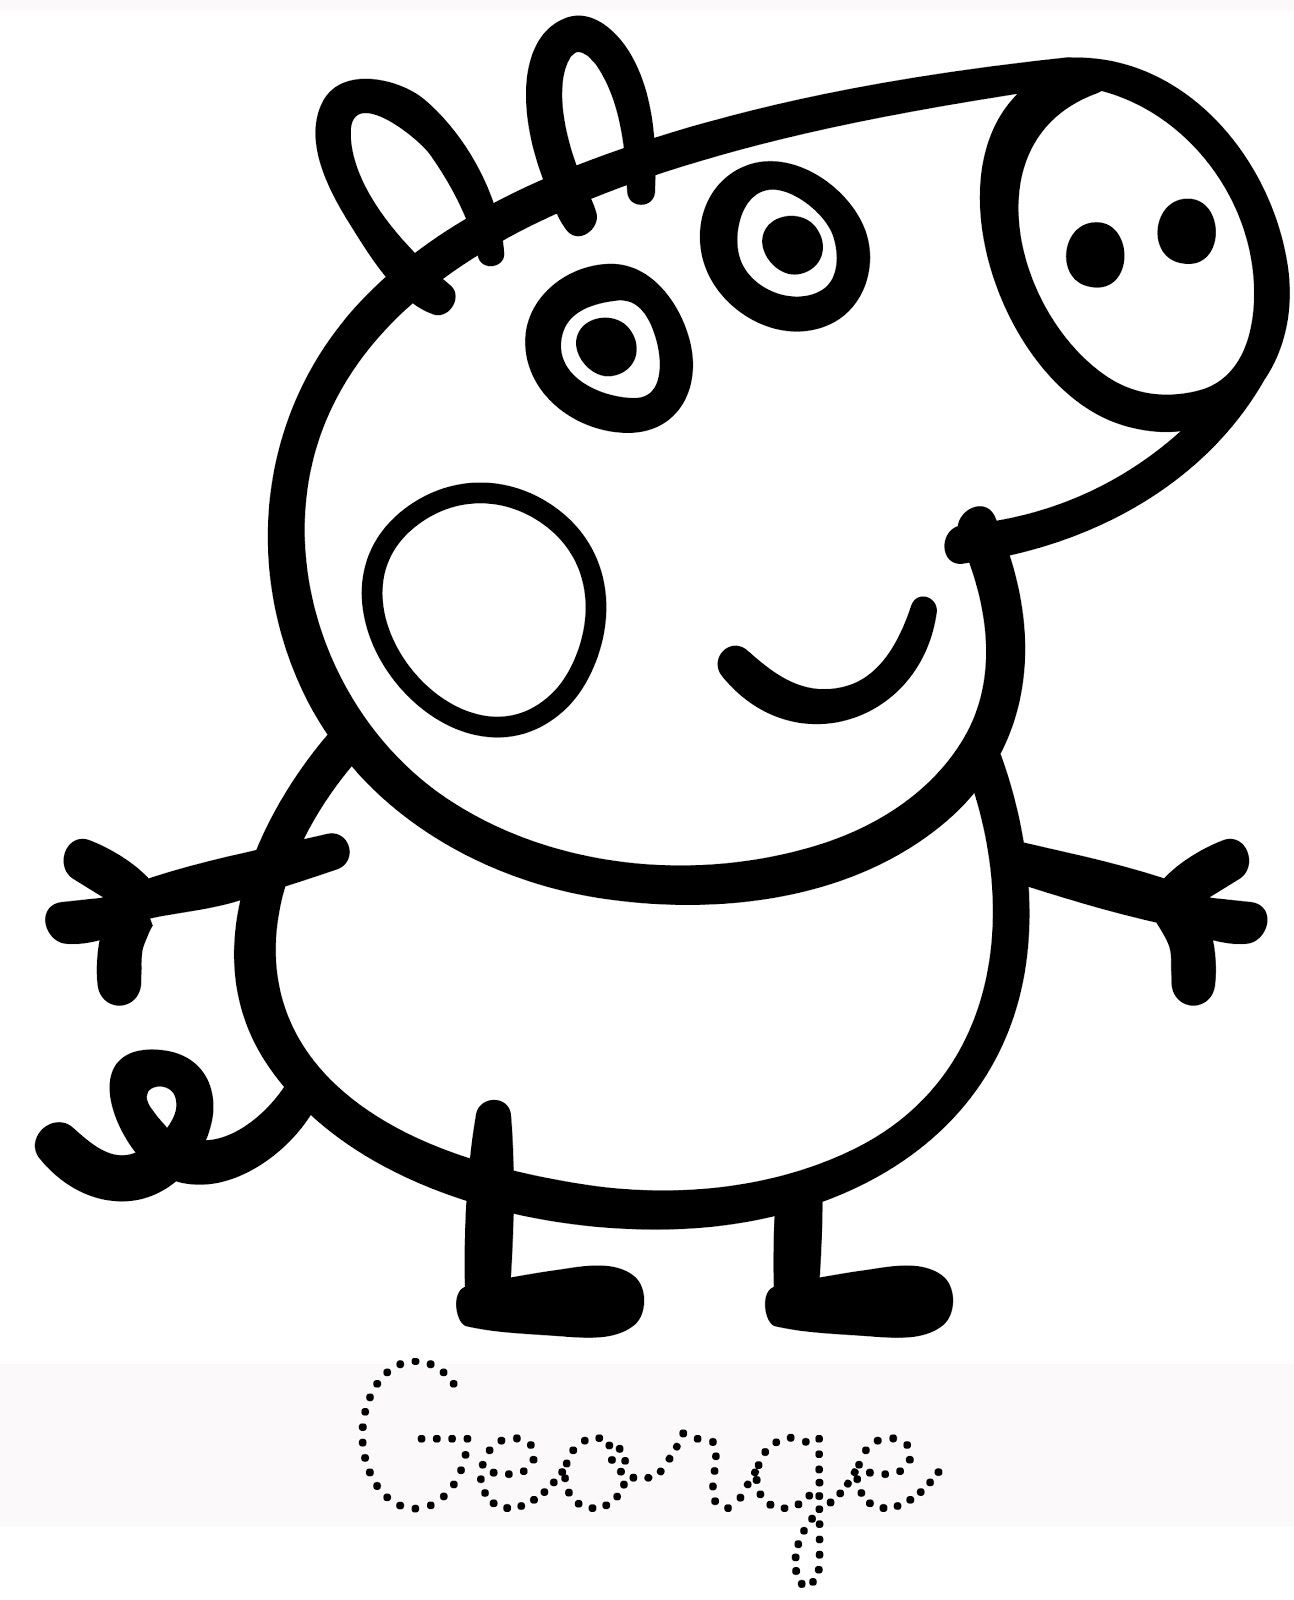 hello! peppa pig and her family is here. print, trace and colour ... - Peppa Pig Coloring Pages Print